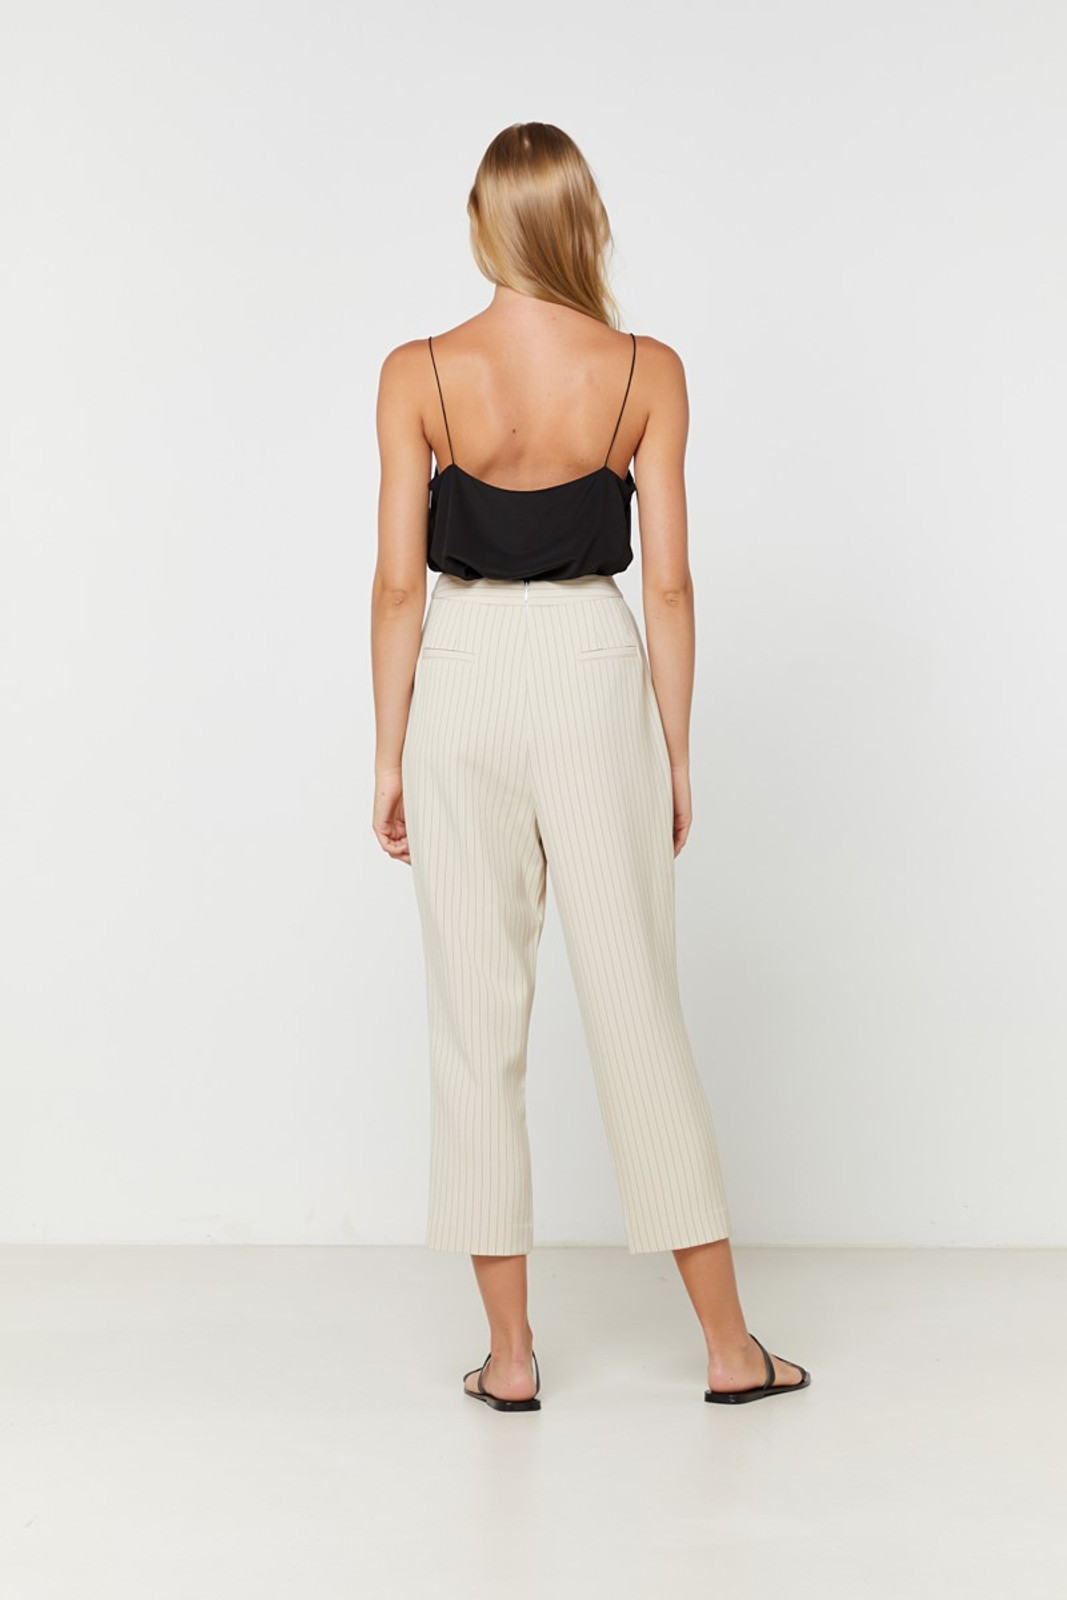 Elka Collective Everly Pant Neutrals  4